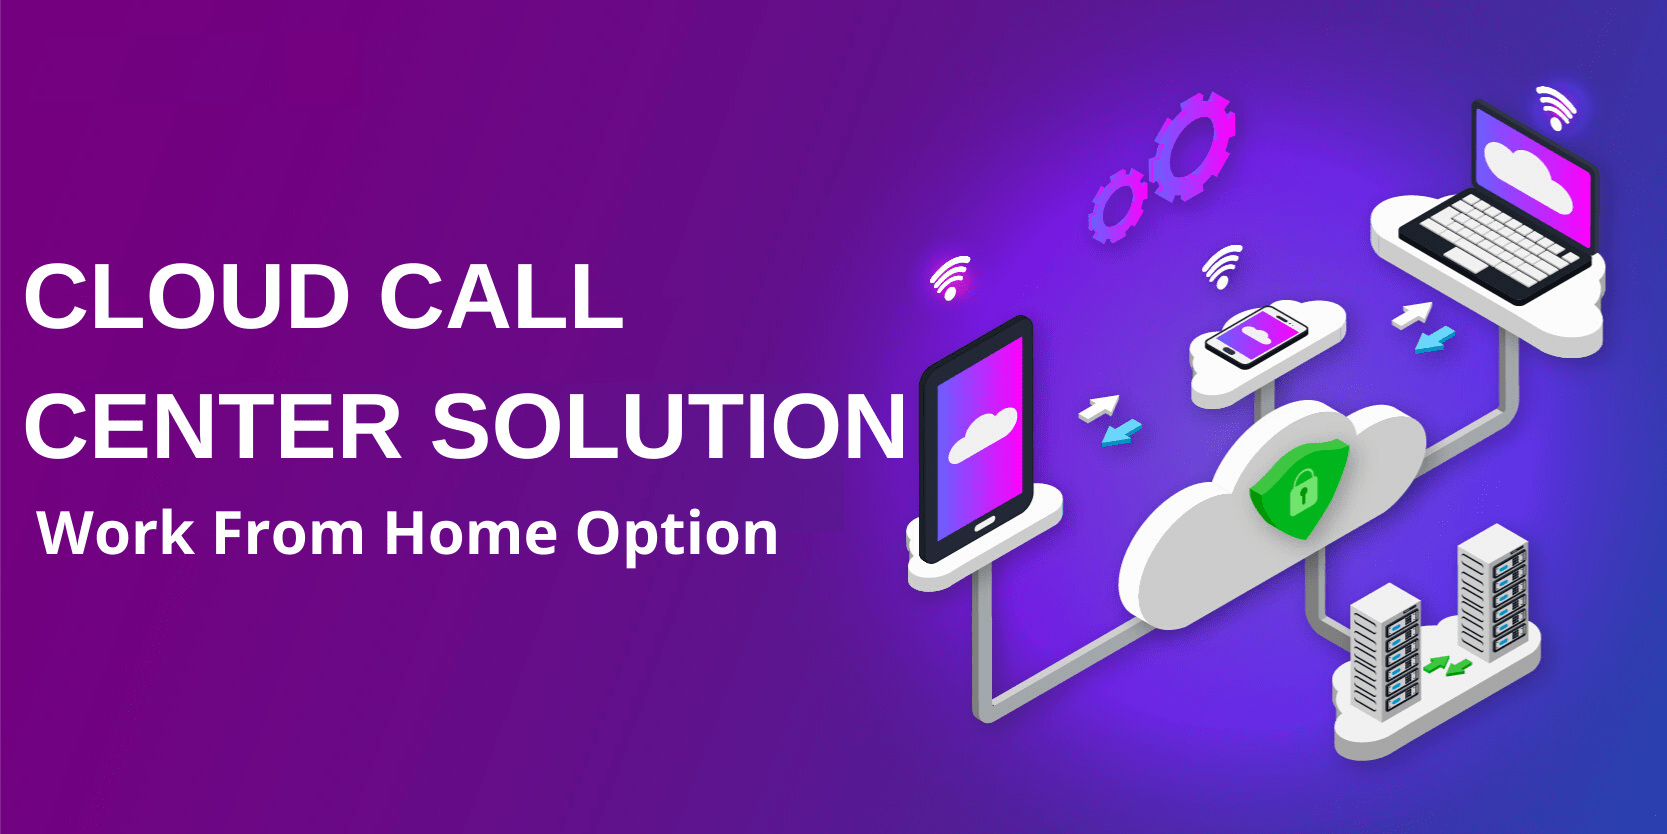 cloud call center solution with work from home option